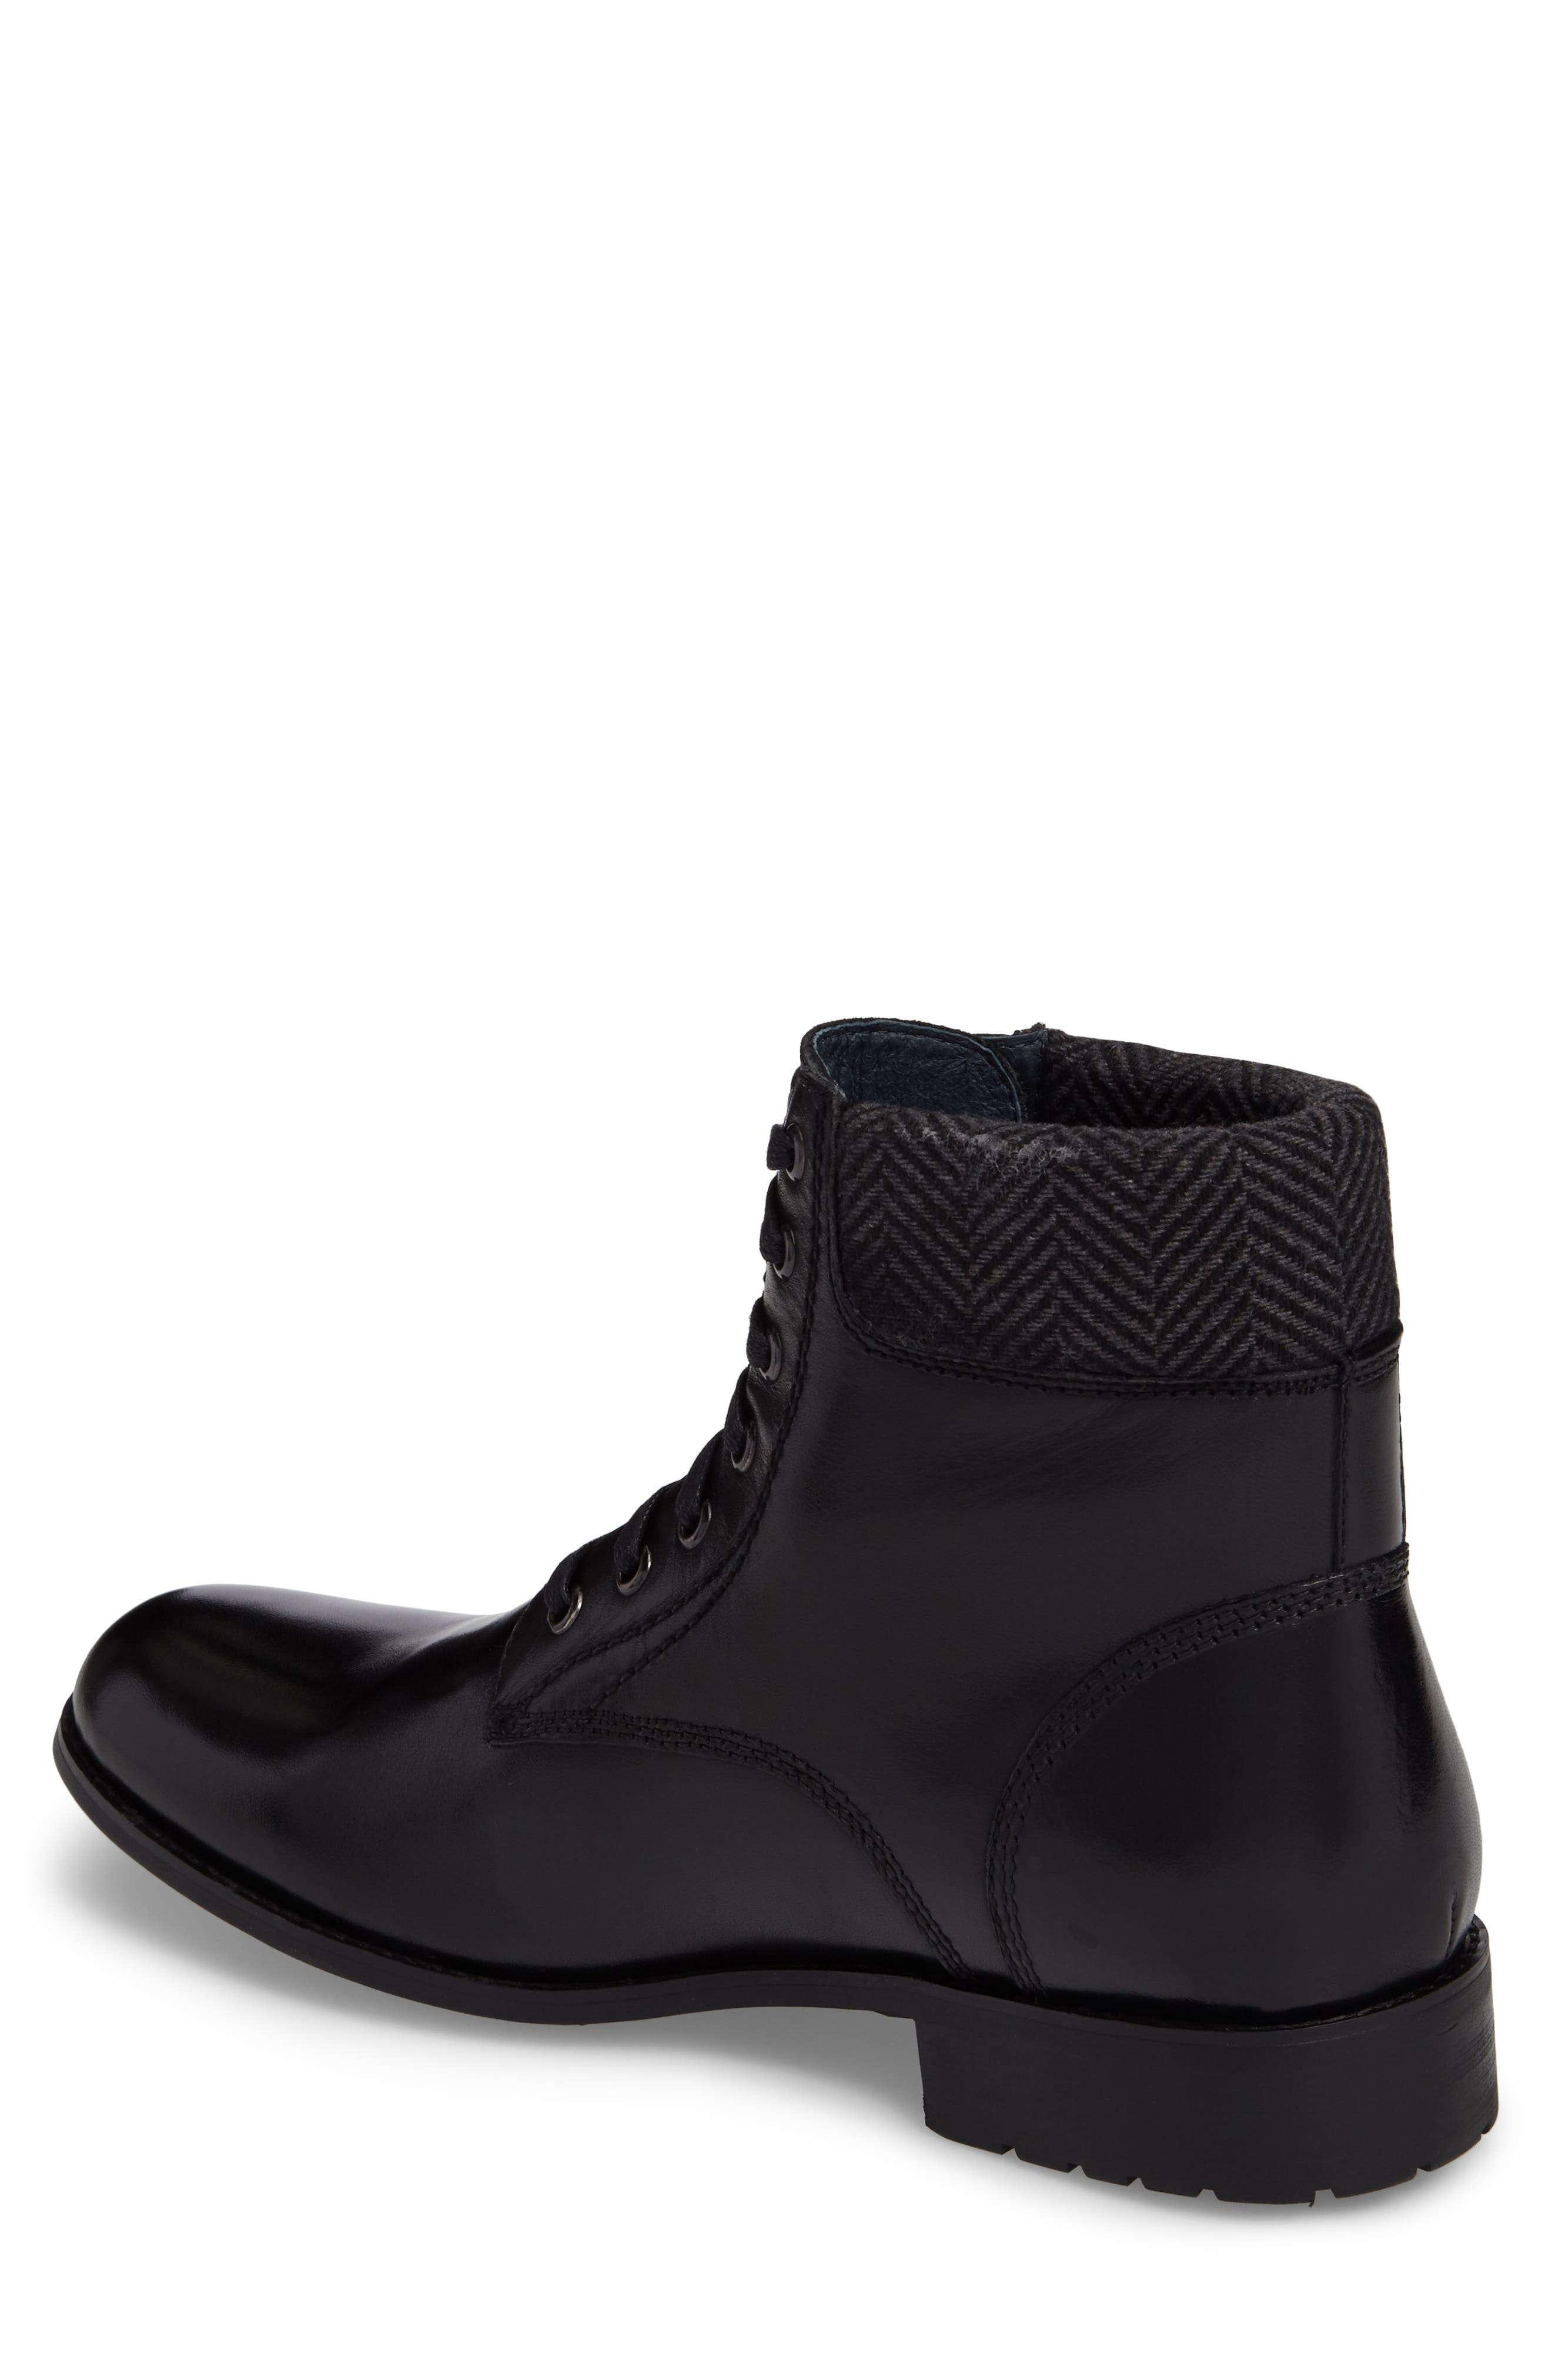 Saar Plain Toe Boot,                             Alternate thumbnail 2, color,                             001